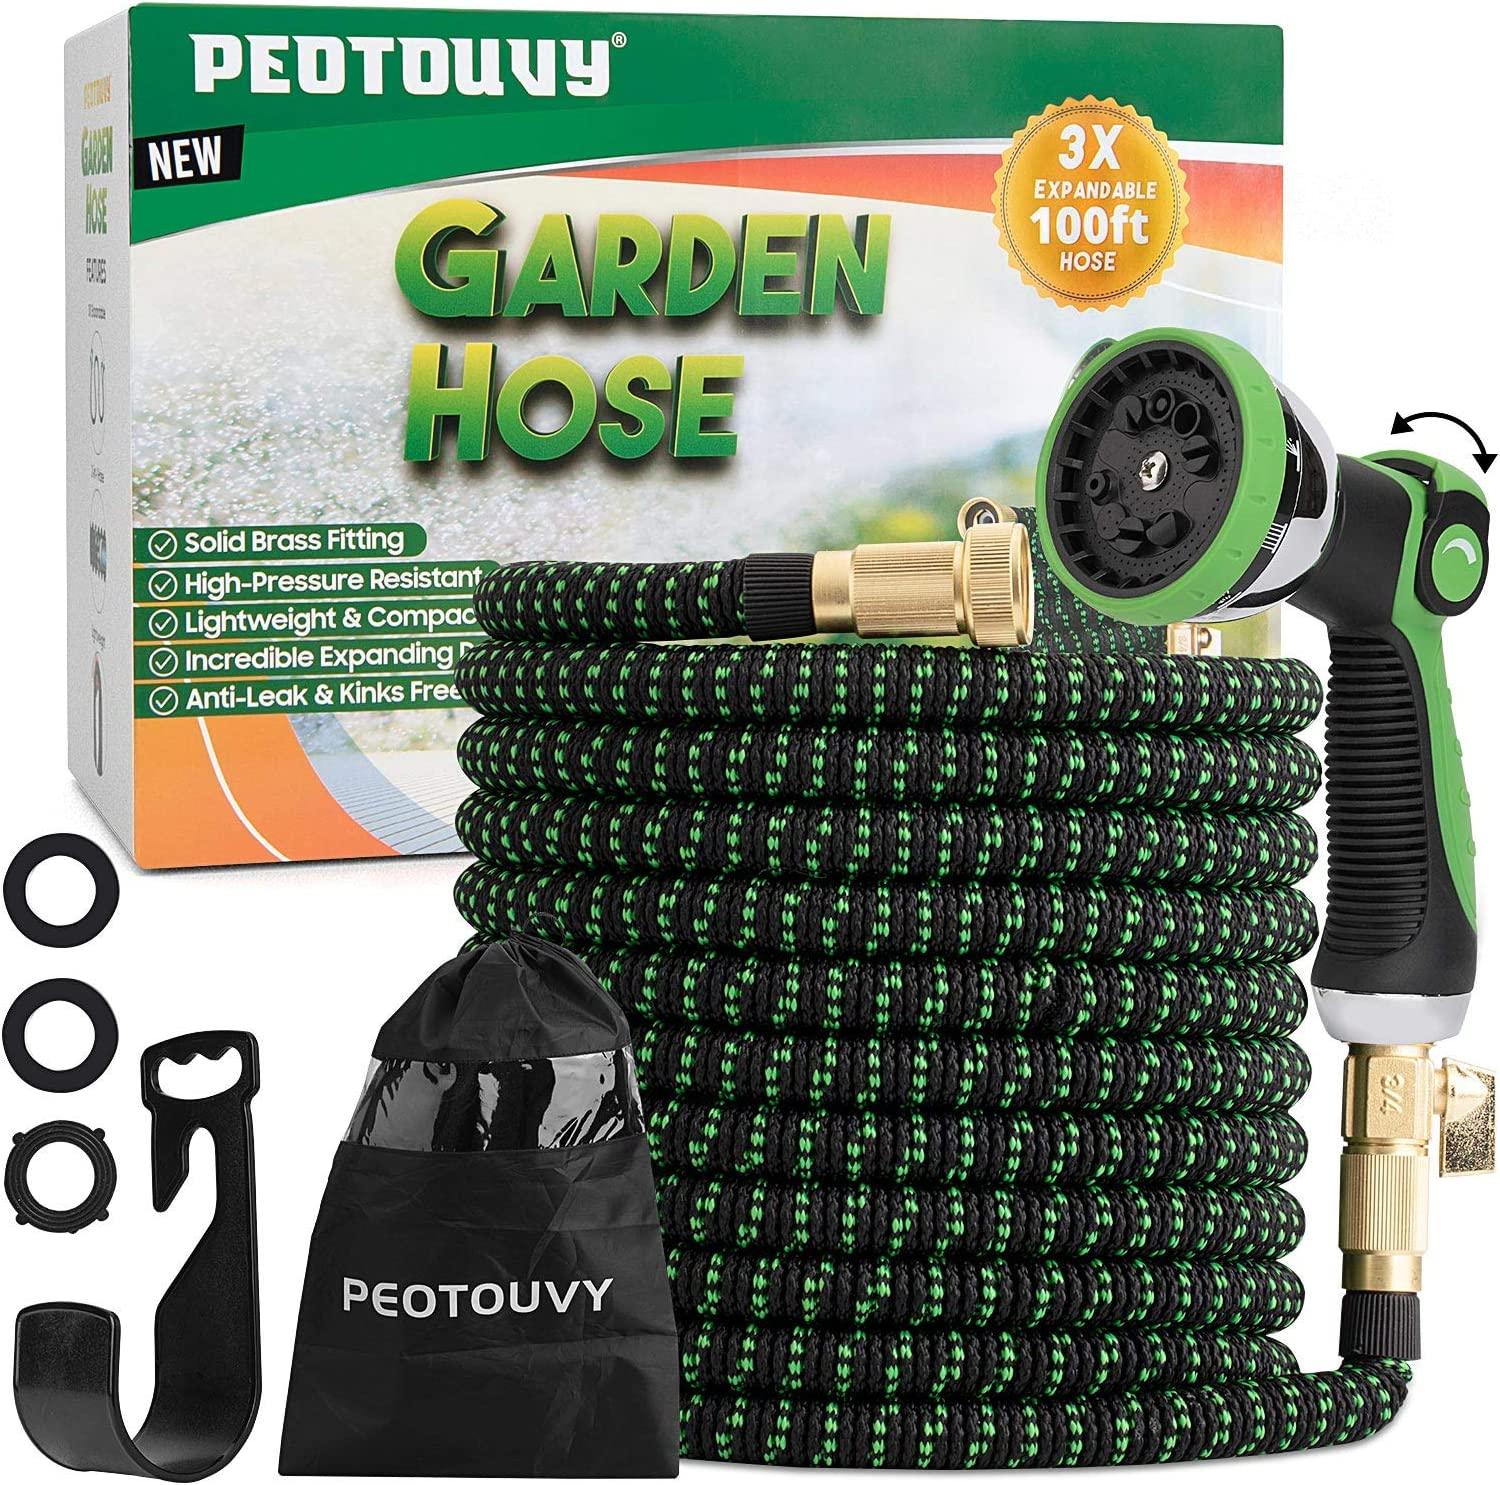 Peotouvy 100ft Expandable Garden Hose,Lightweight Leakproof Water Hose With 10 Function Nozzle, No-Kink with 3/4 inch Brass Fittings 3750D Durable Outdoor Yard Hose for Garden,Car Wash,Pet Bathing